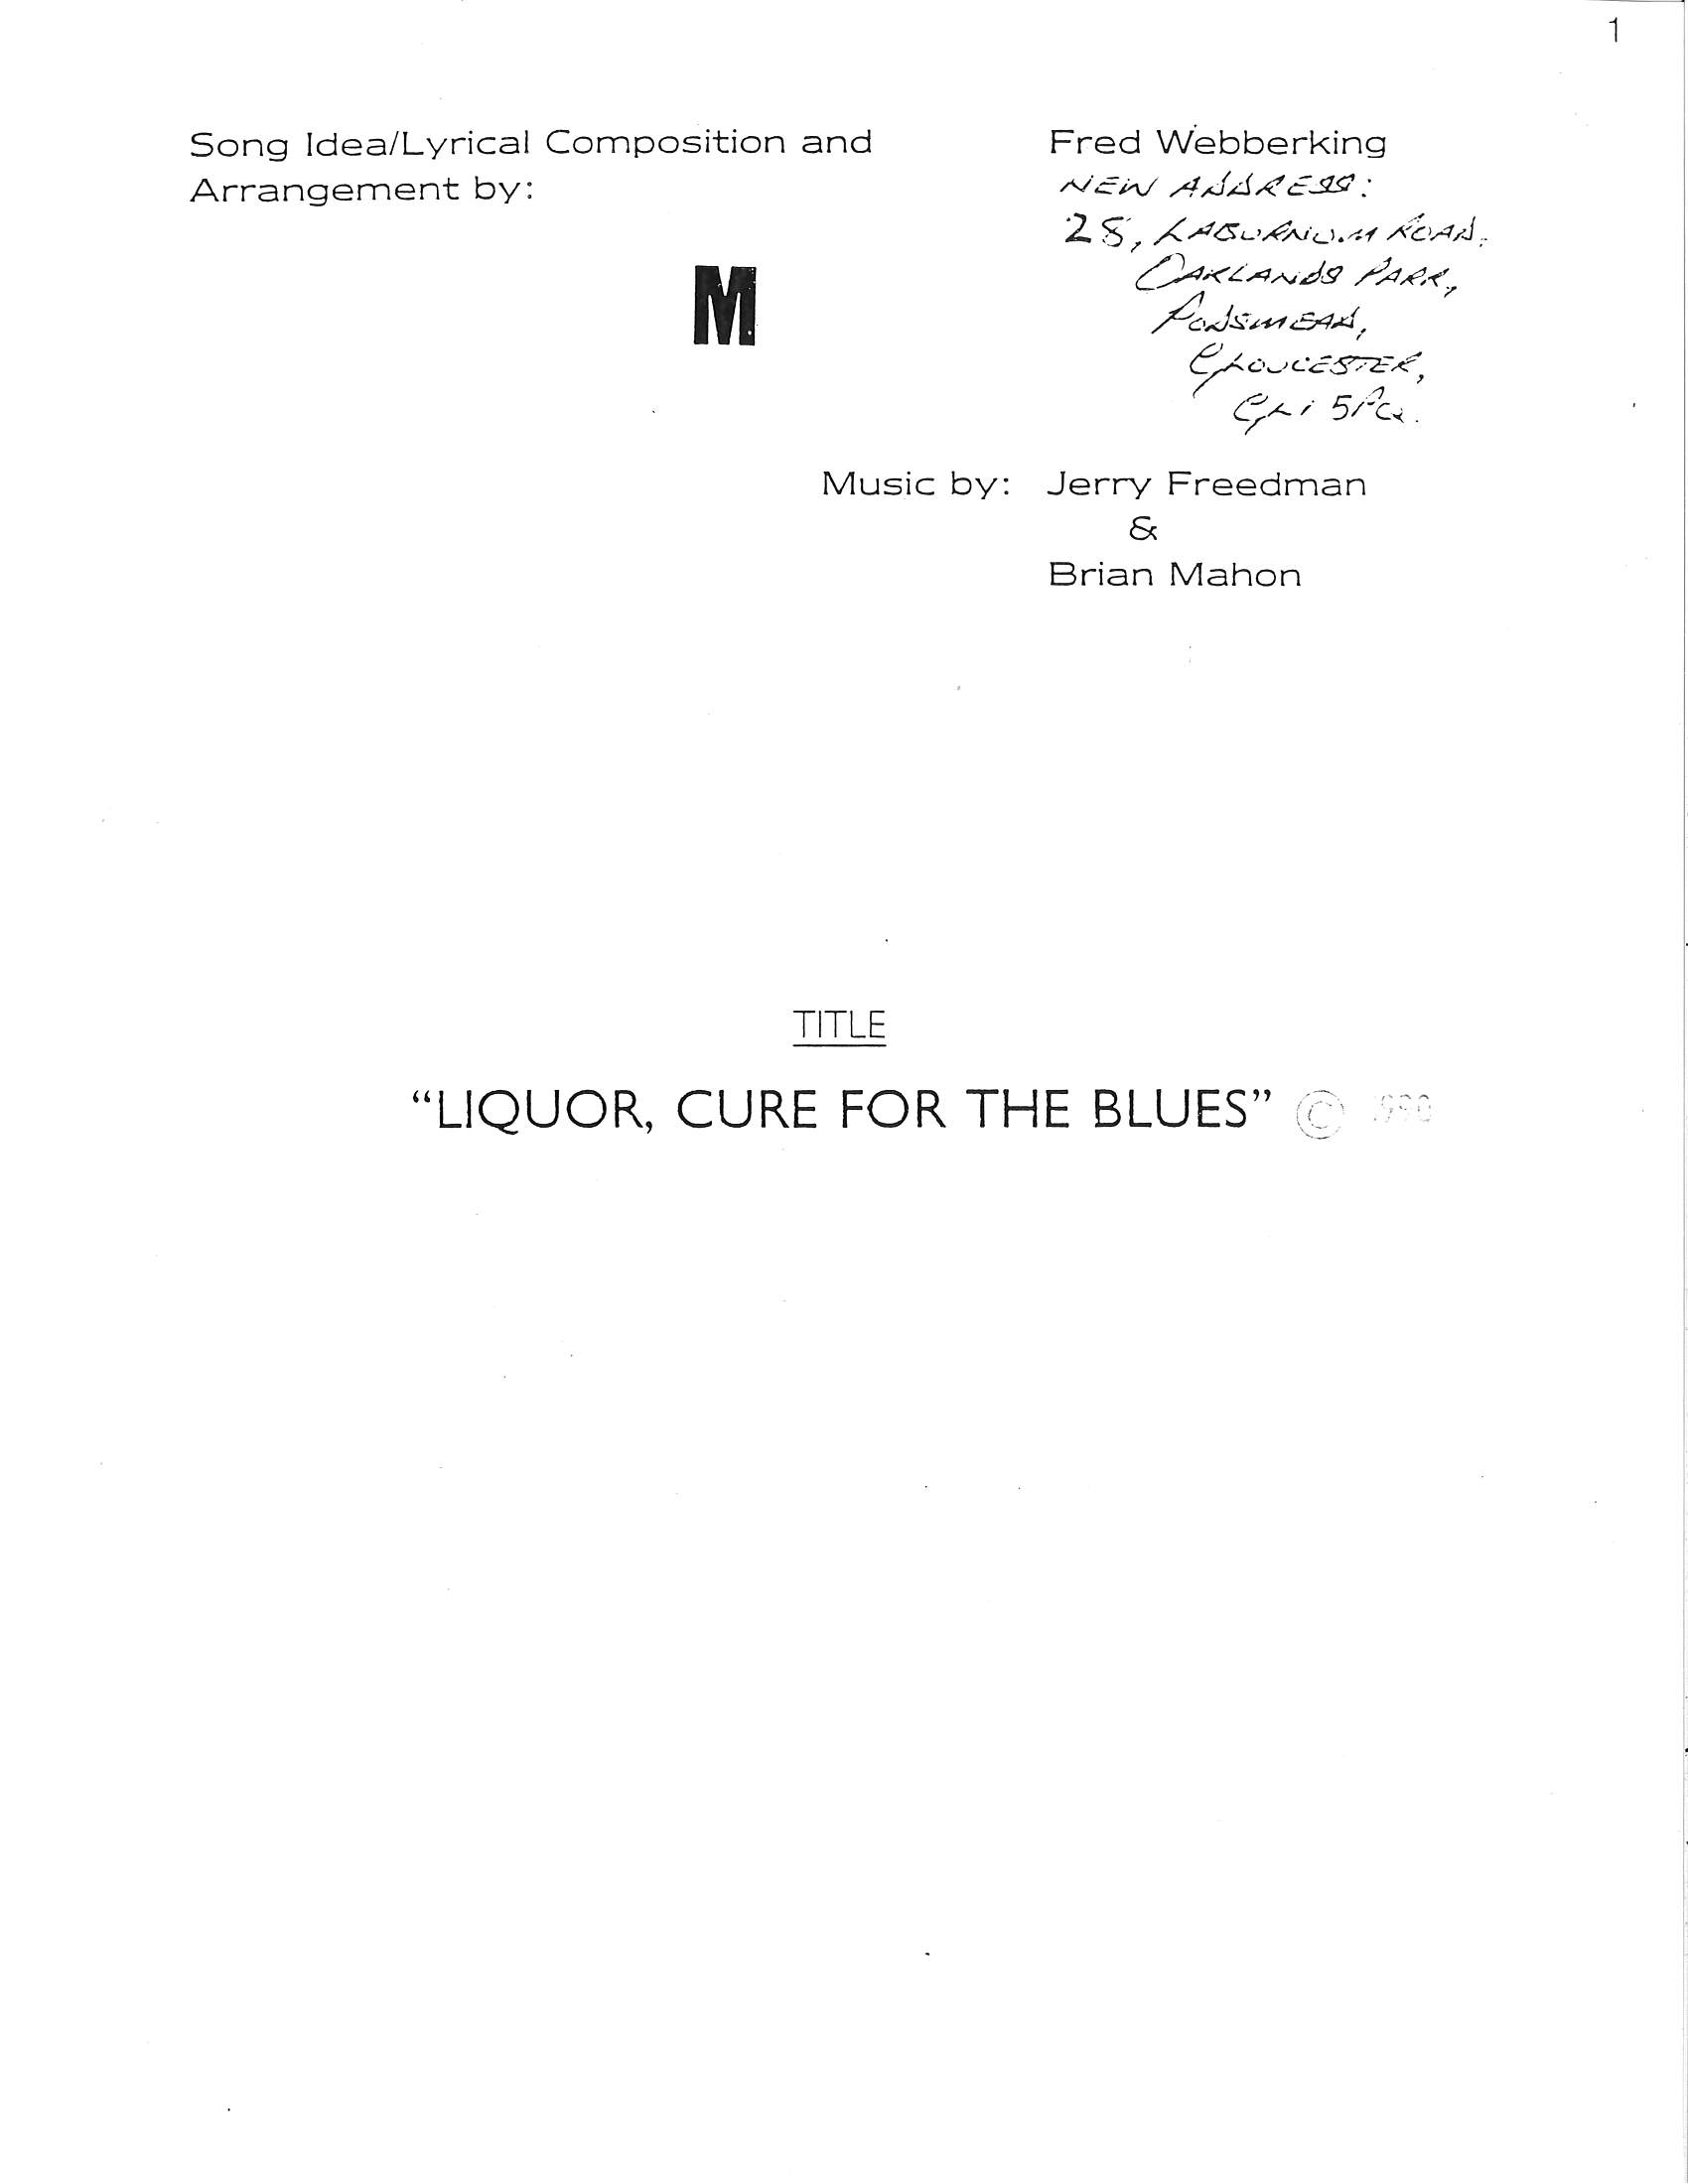 Song_Liquor_Cure_For_The_Blues_Thumbnail